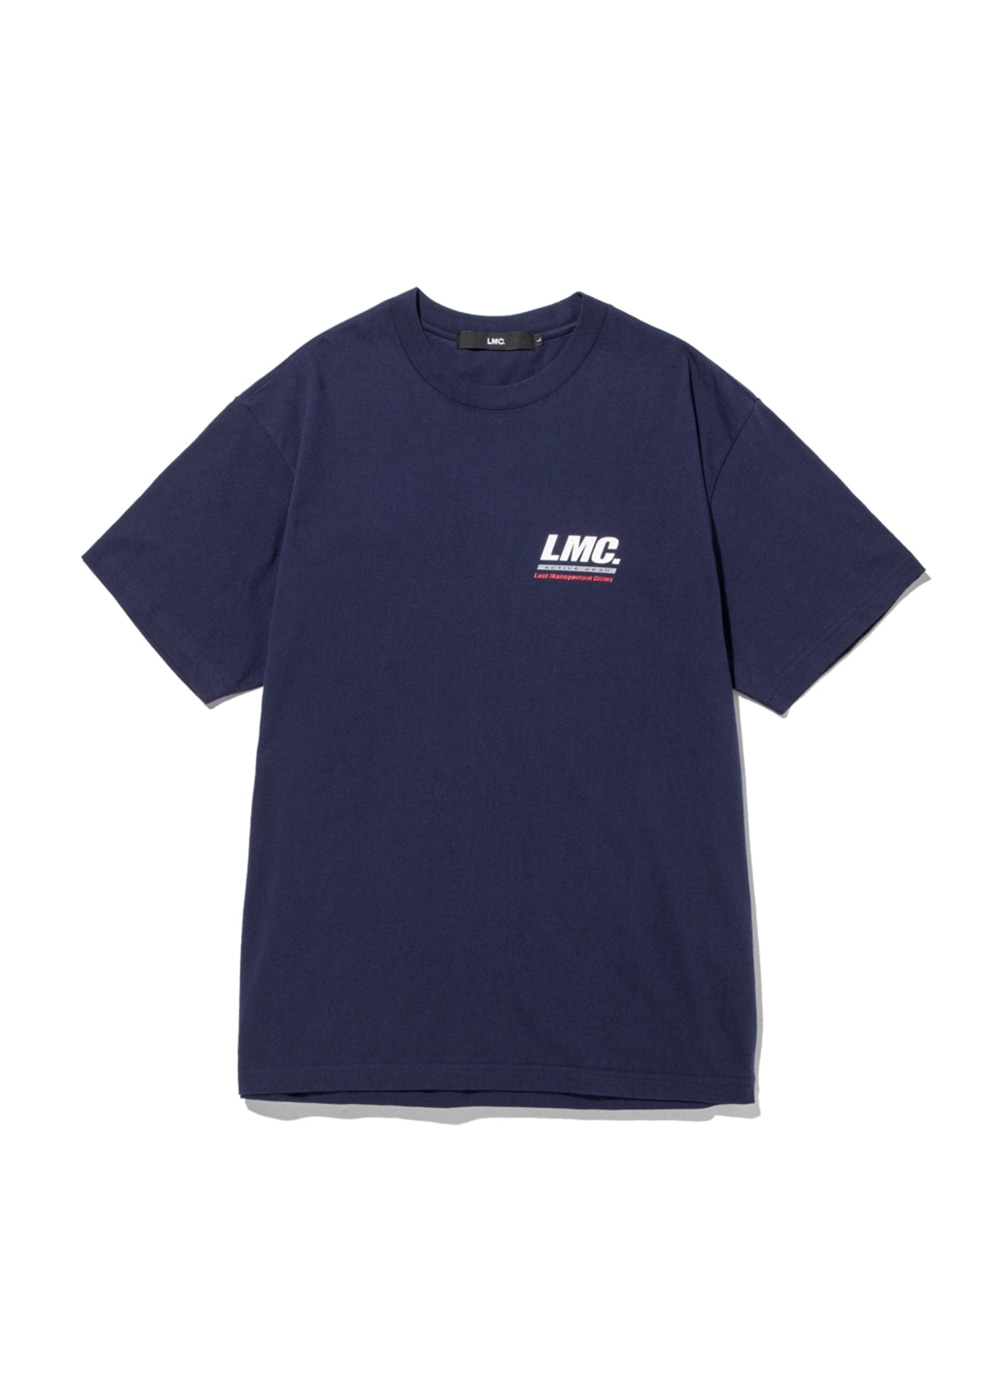 LMC ACTIVE GEAR TEE navy